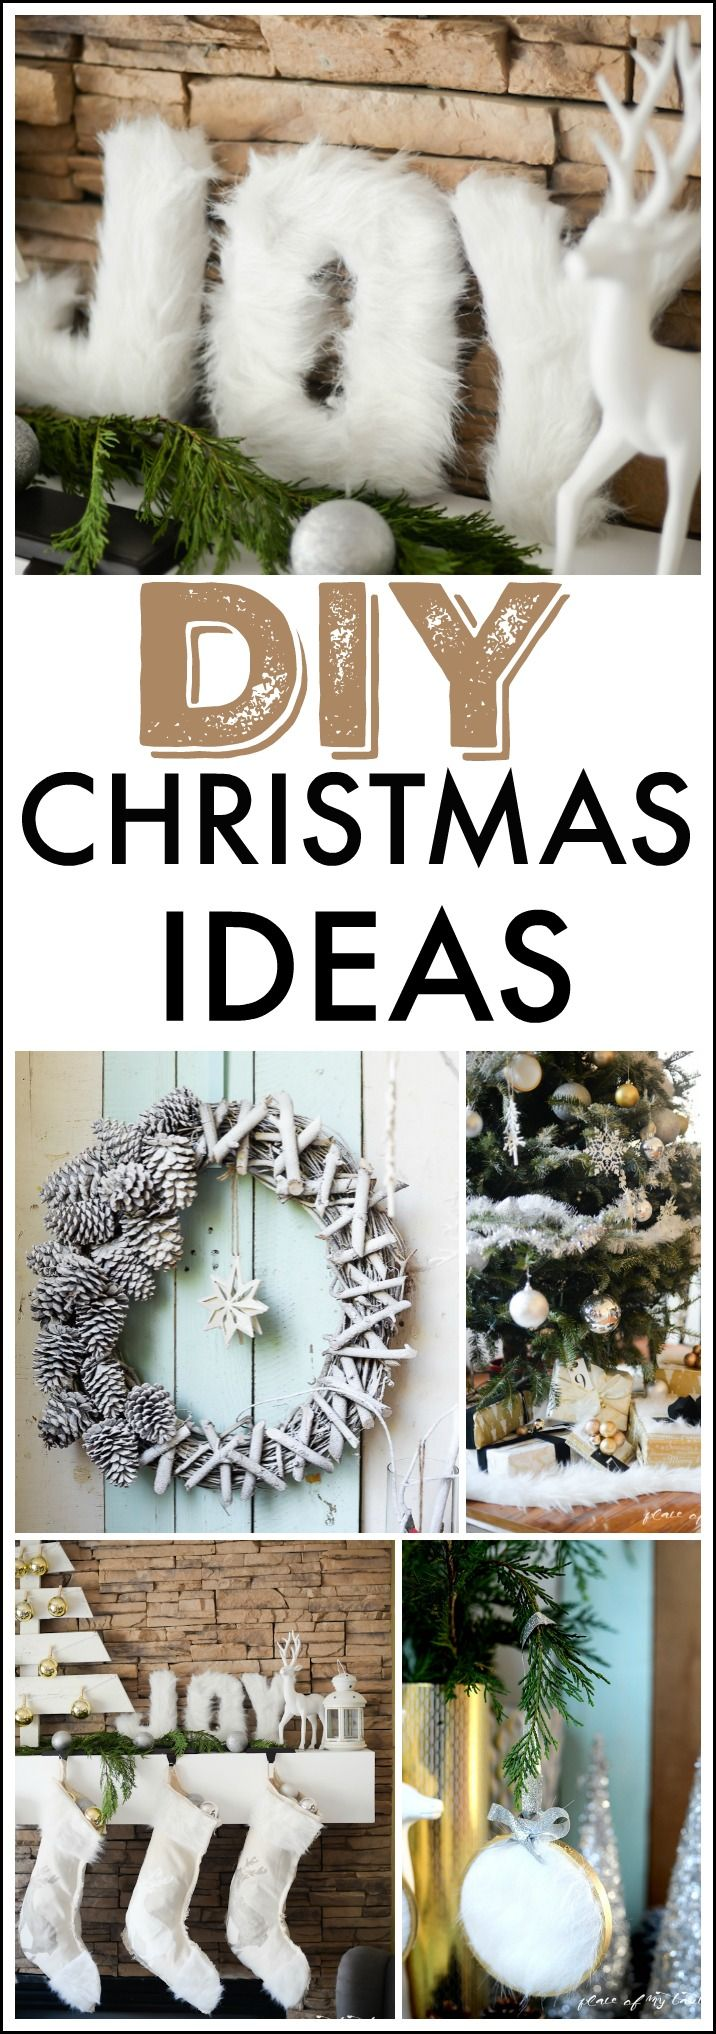 Find a great deal of amazing DIY Christmas ideas to make the preparation for the holidays even more meaningful and to try your creative side.